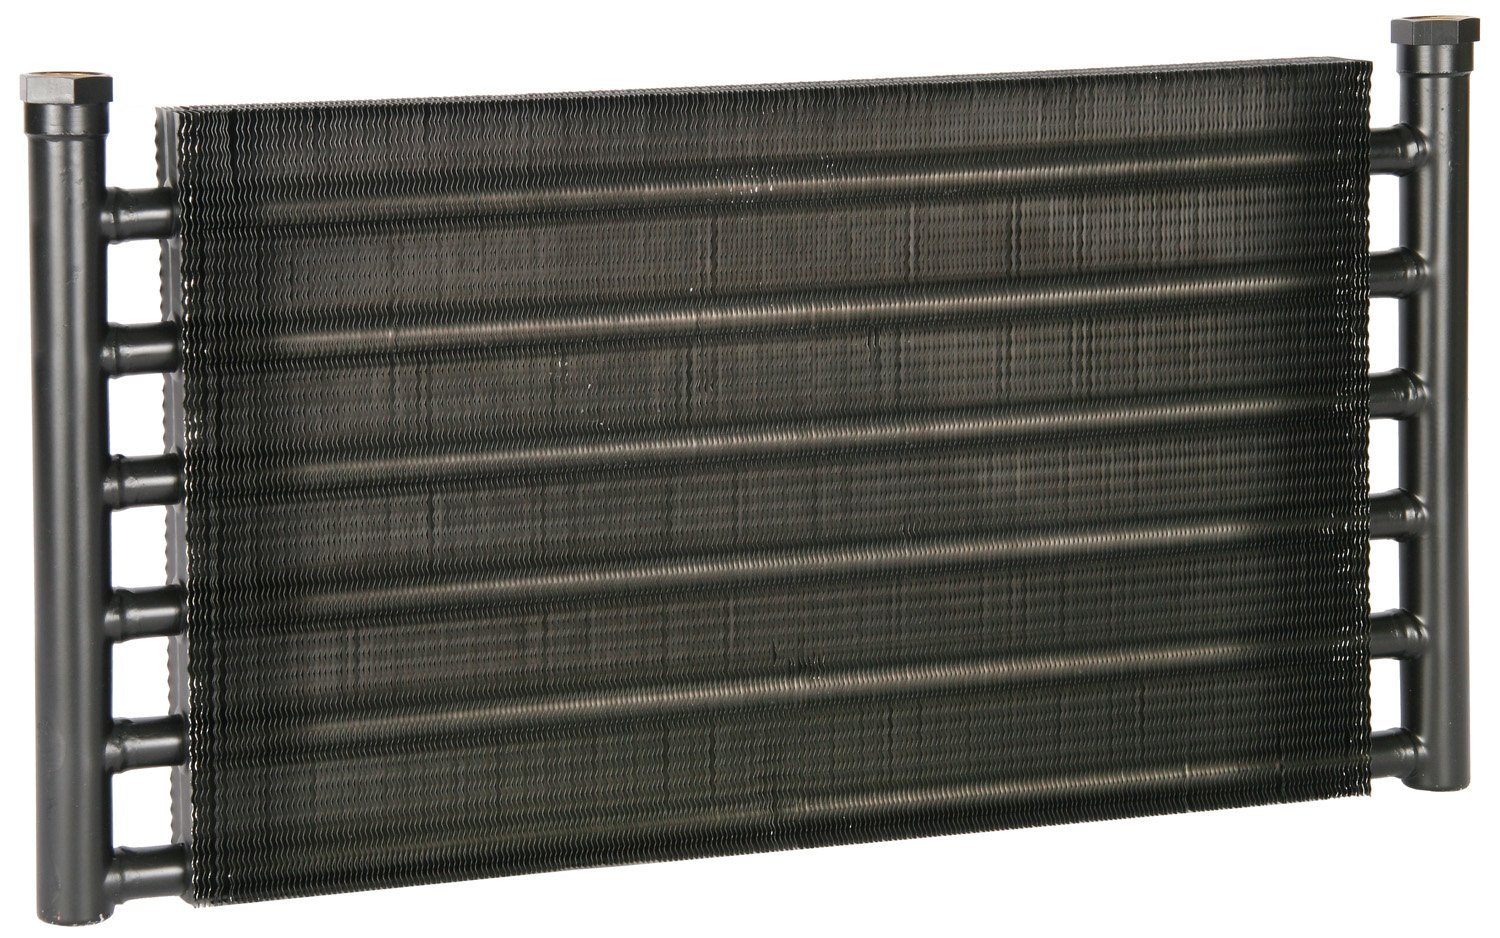 Hayden heavy duty transission oil cooler